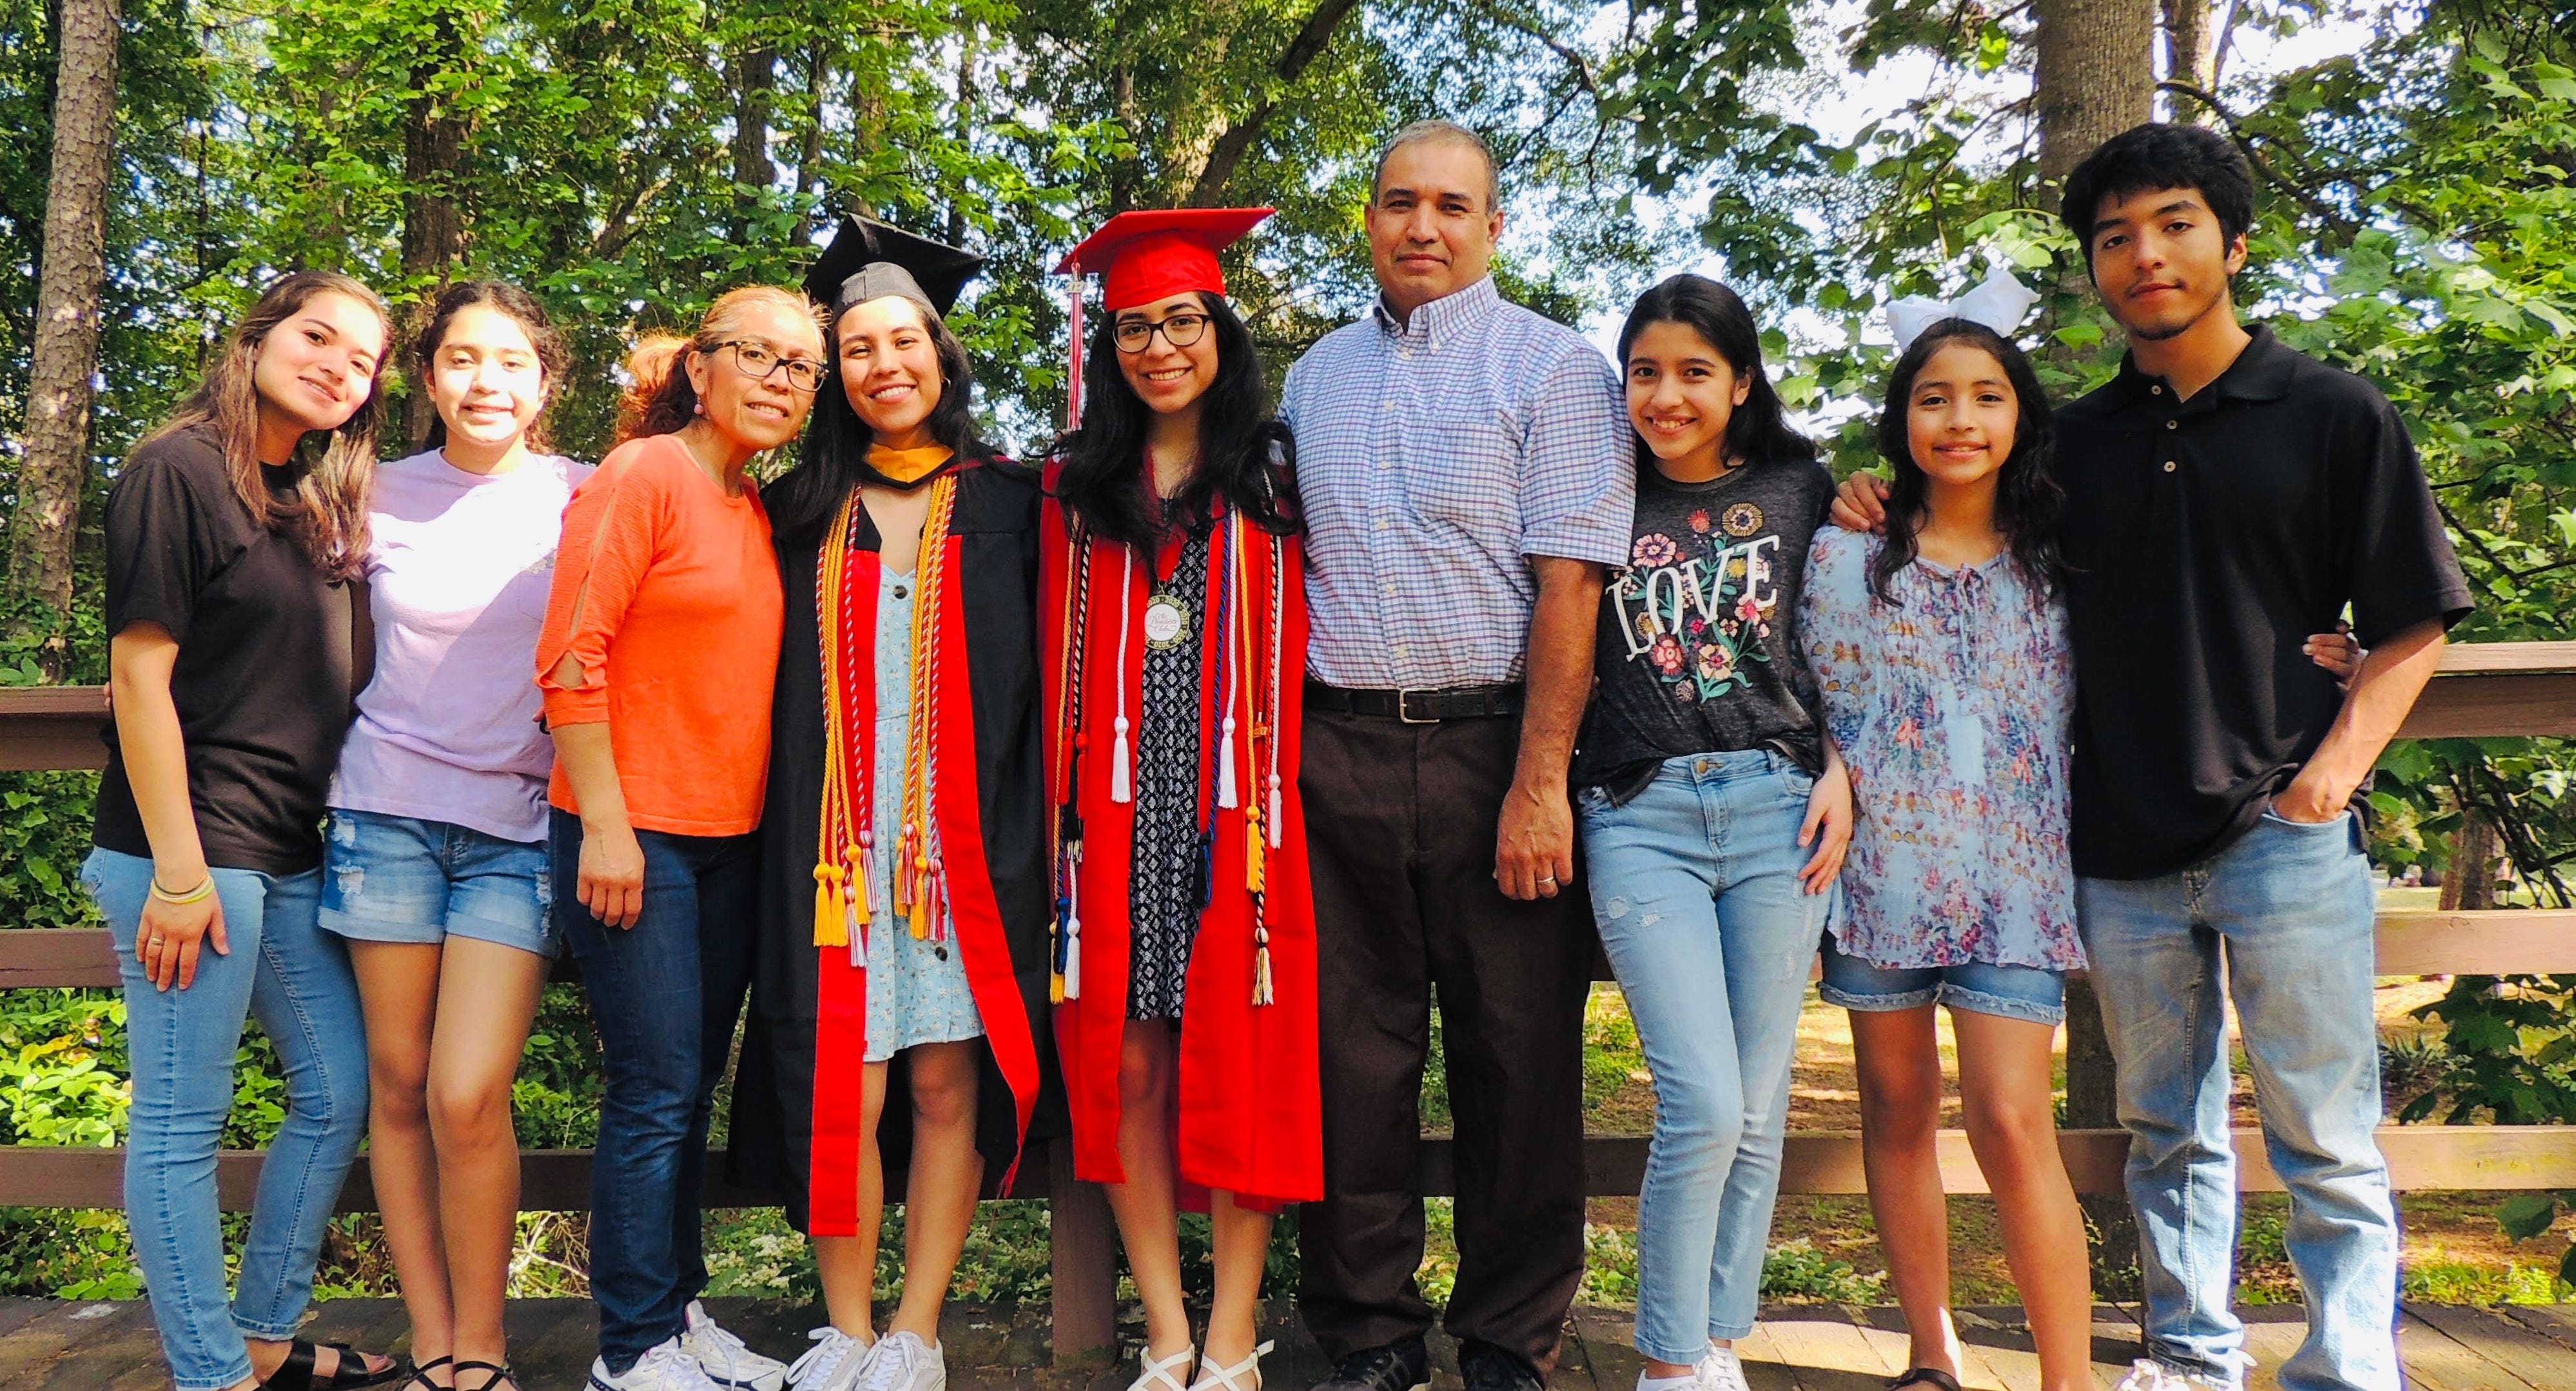 Indira Islas, a Dreamer whose parents fled violence in Mexico, graduated from Delaware State University.